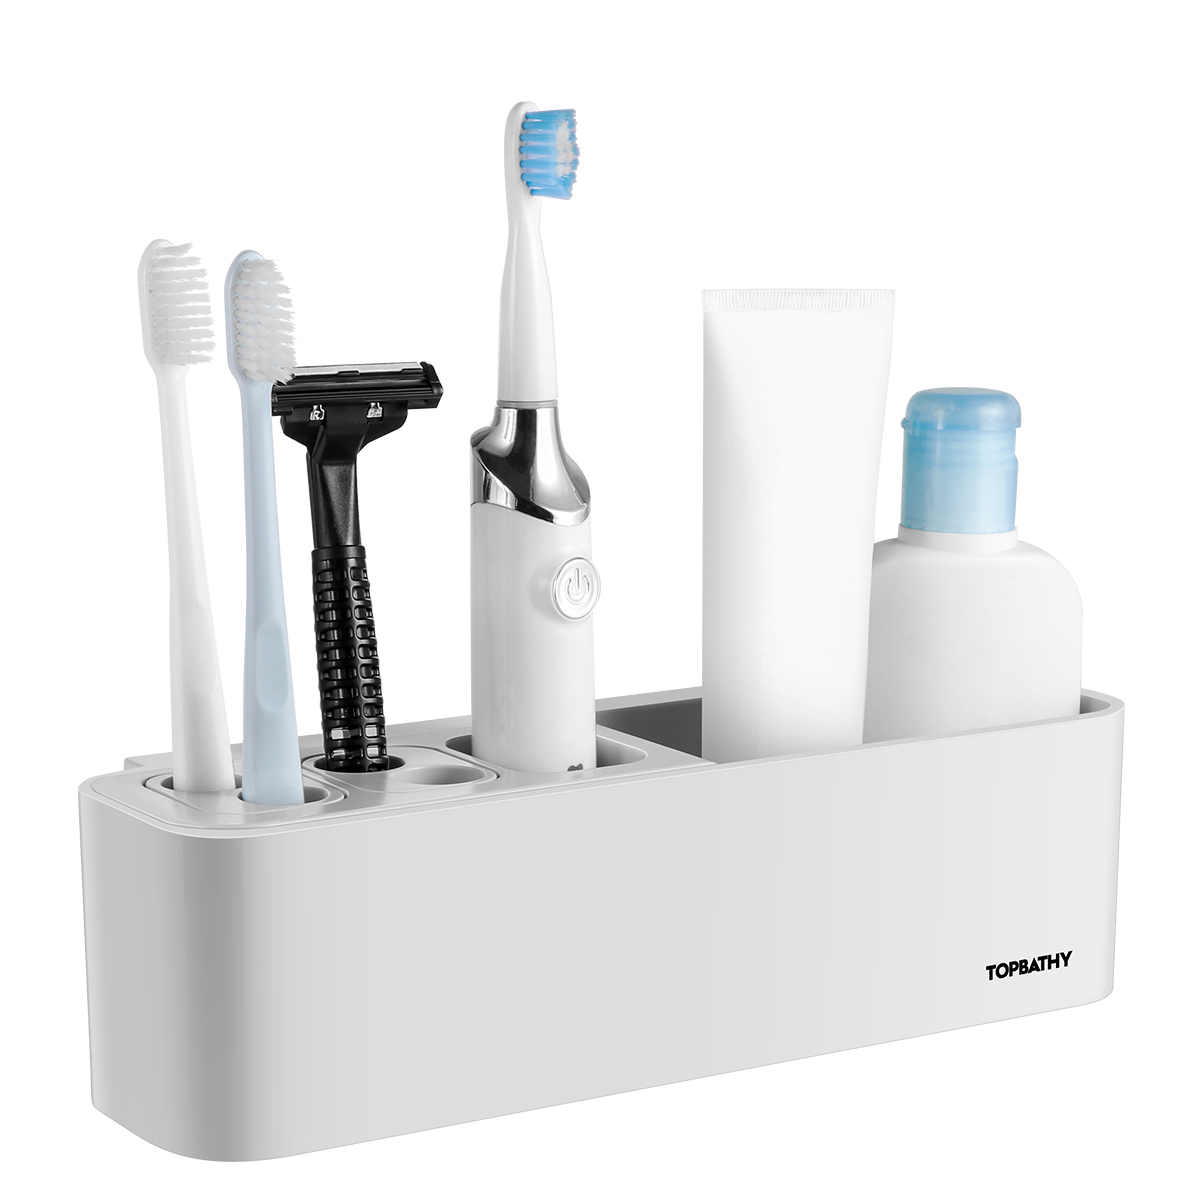 Plastic Toothbrush Holder Tooth Brush Storage Organizer Teeth Brush Head Support White Stander For Bathroom Home